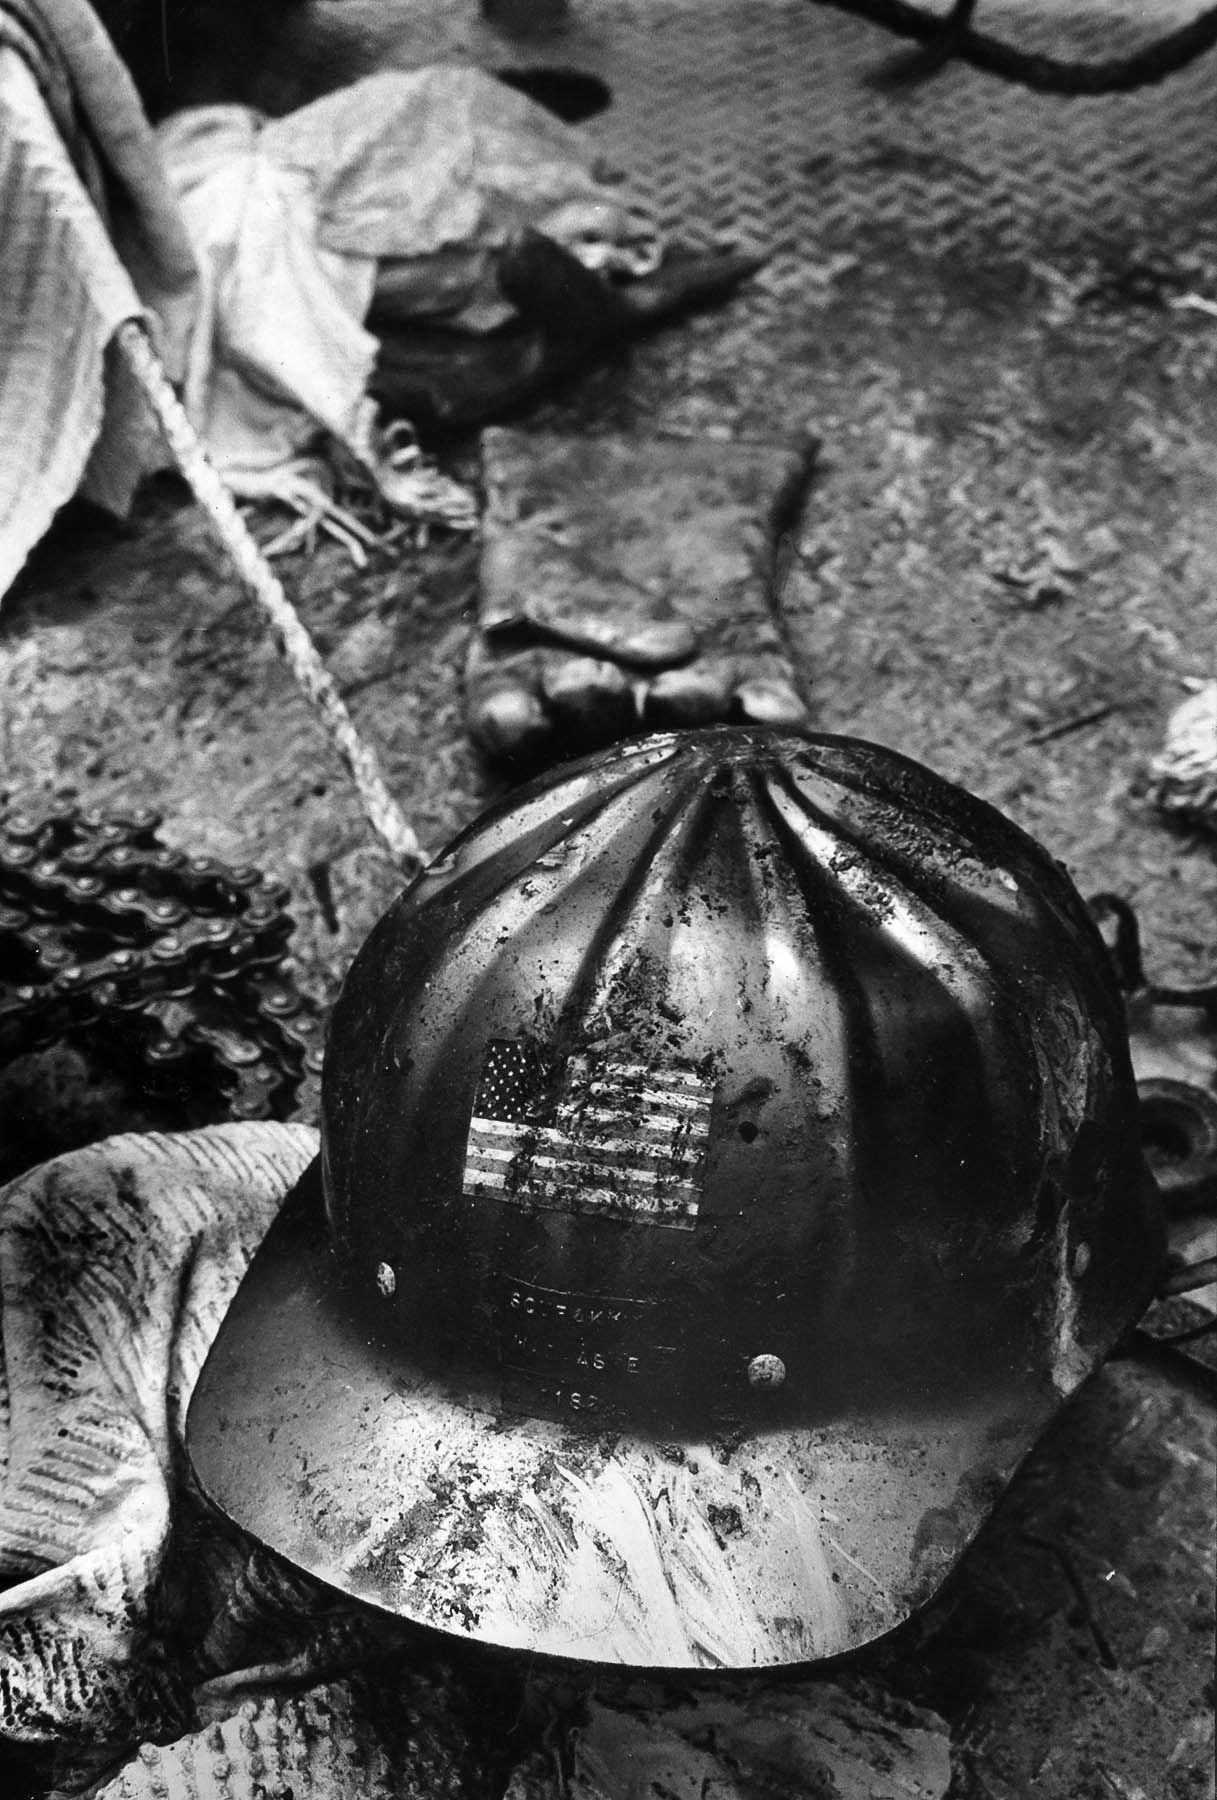 June 27, 1971: Helmet worn by William I. Ashe, 52, killed by explosion in tunnel in Sylmar. This pho